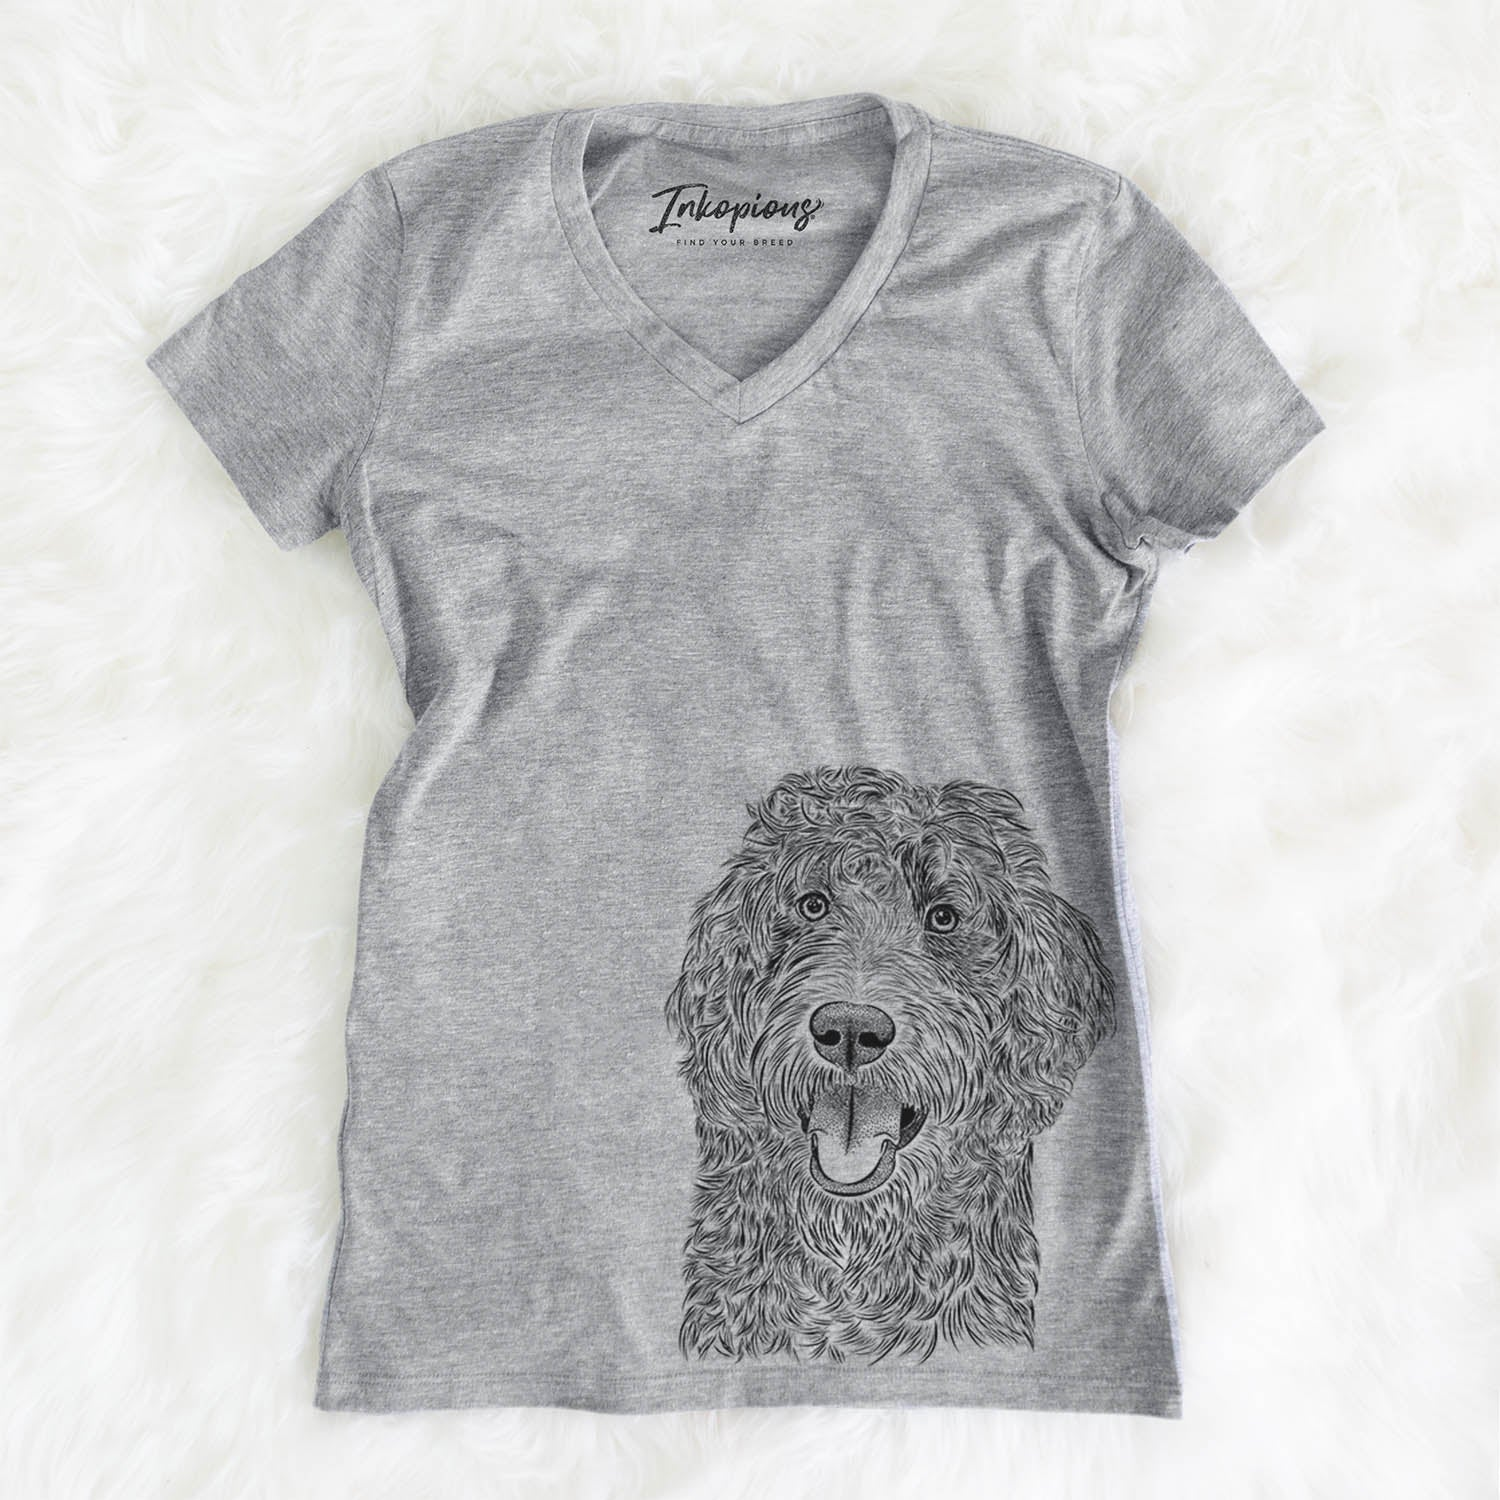 Murr Dog the Labradoodle - Women's Modern Fit V-neck Shirt